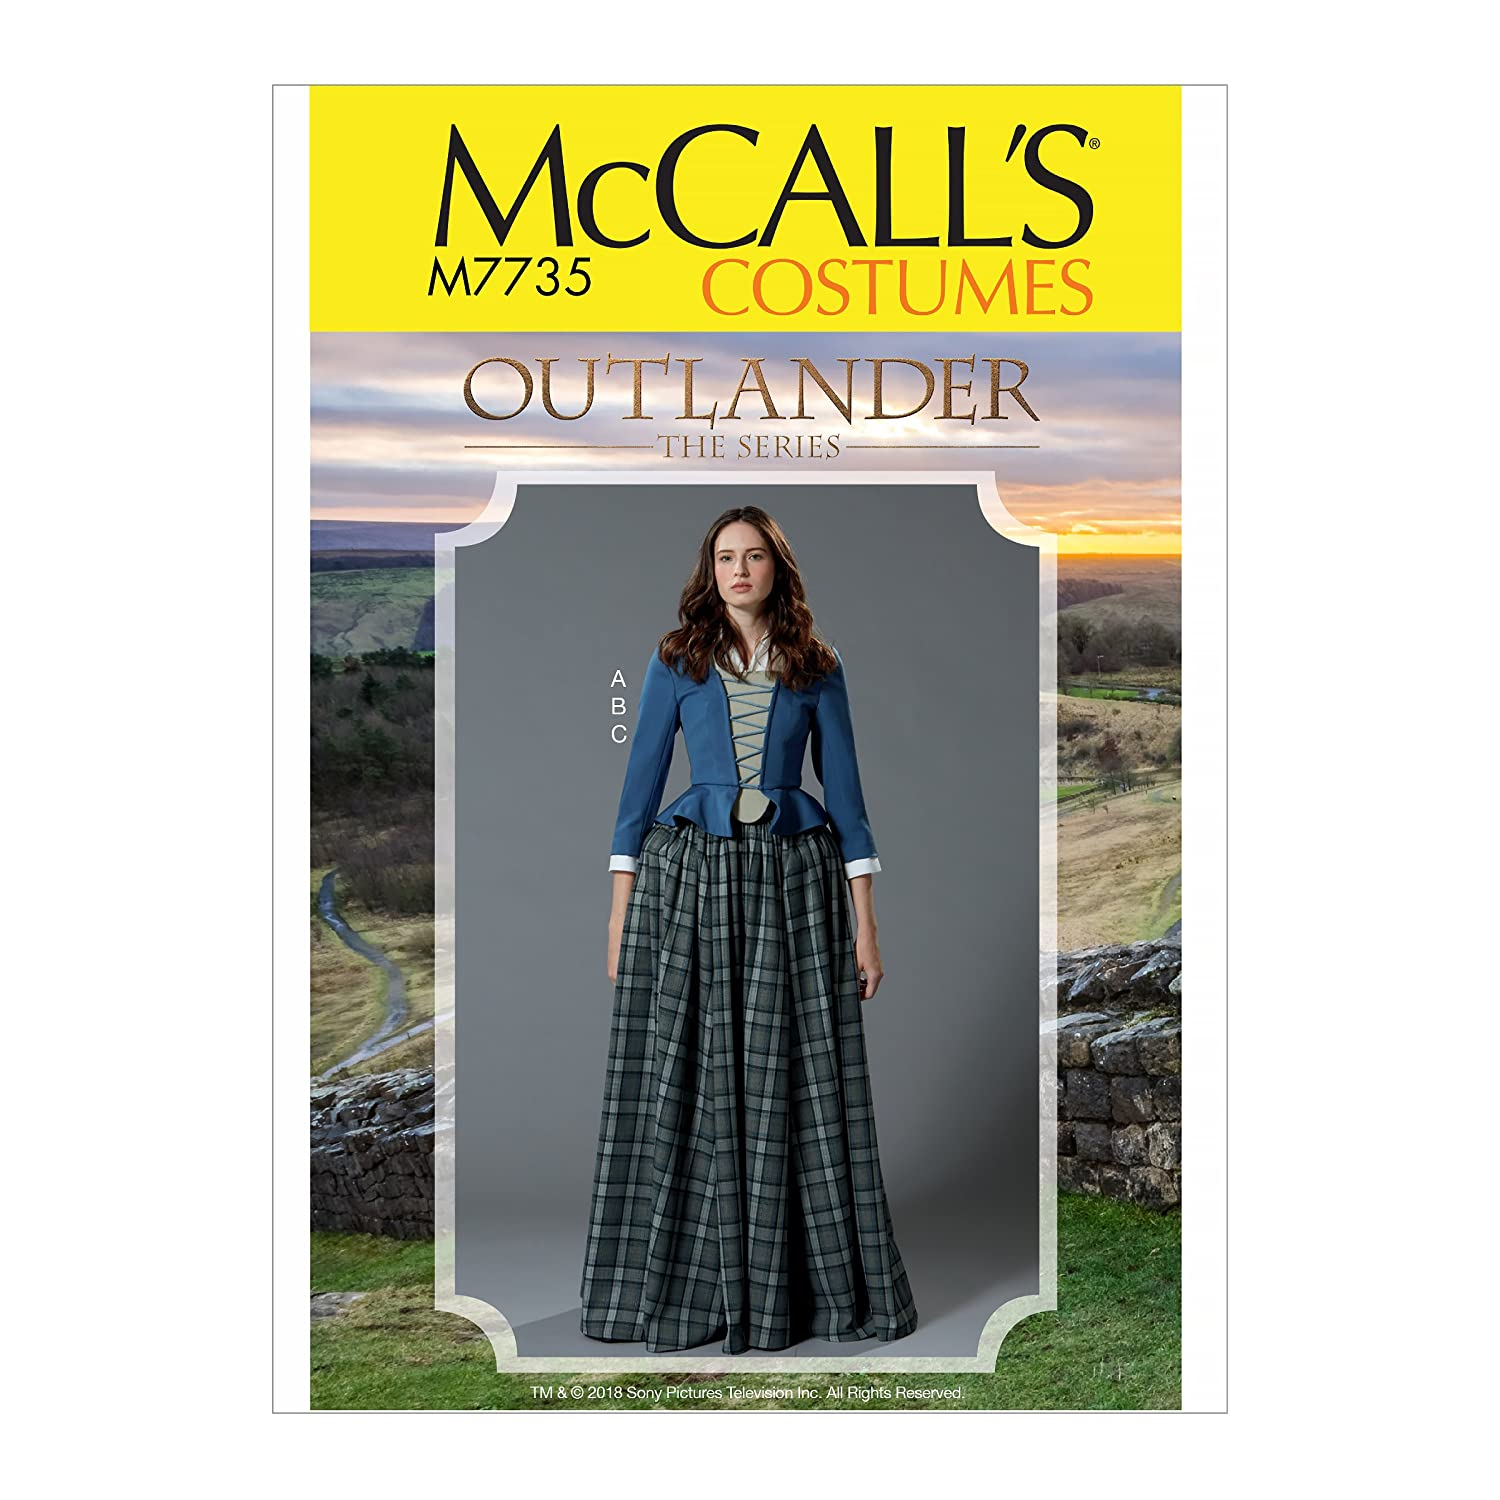 McCalls Outlander 18th century dress pattern